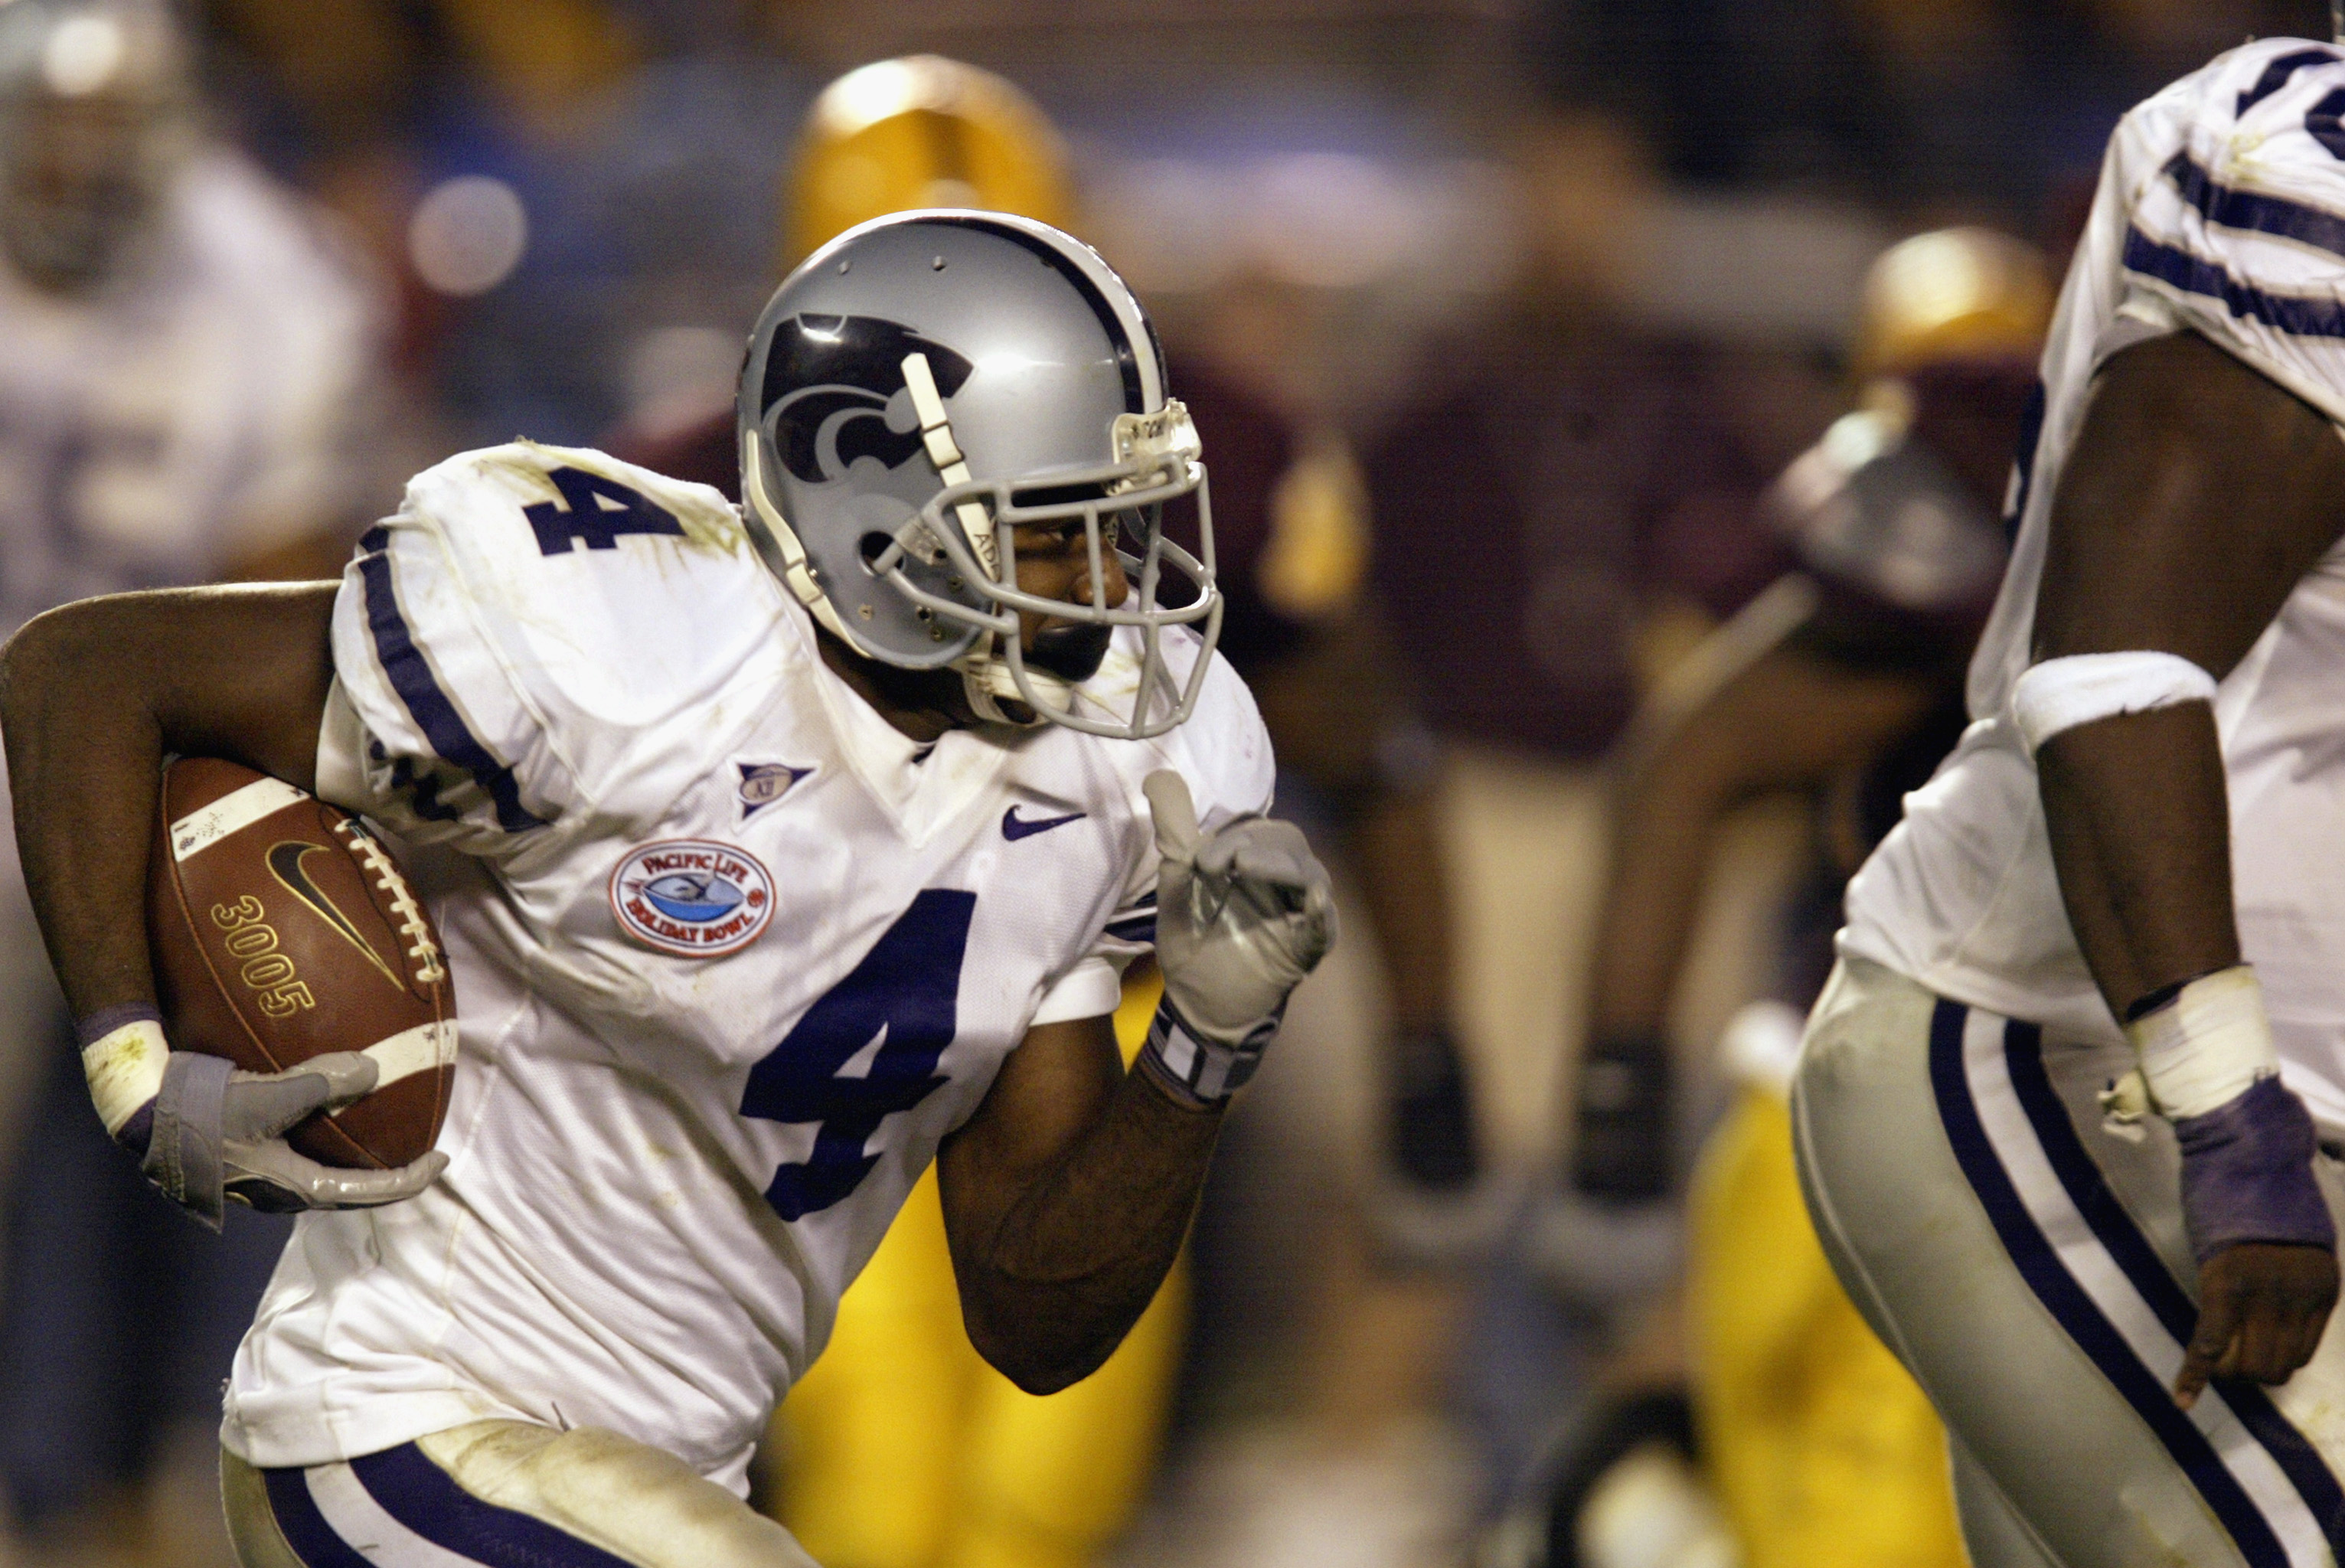 The most famous K-State defensive back to wear No. 4 is undoubtedly Terence Newman. While Jordan Noil has a lot of potential and will be a huge help in the defensive backfield, those are huge shoes to try to fill.